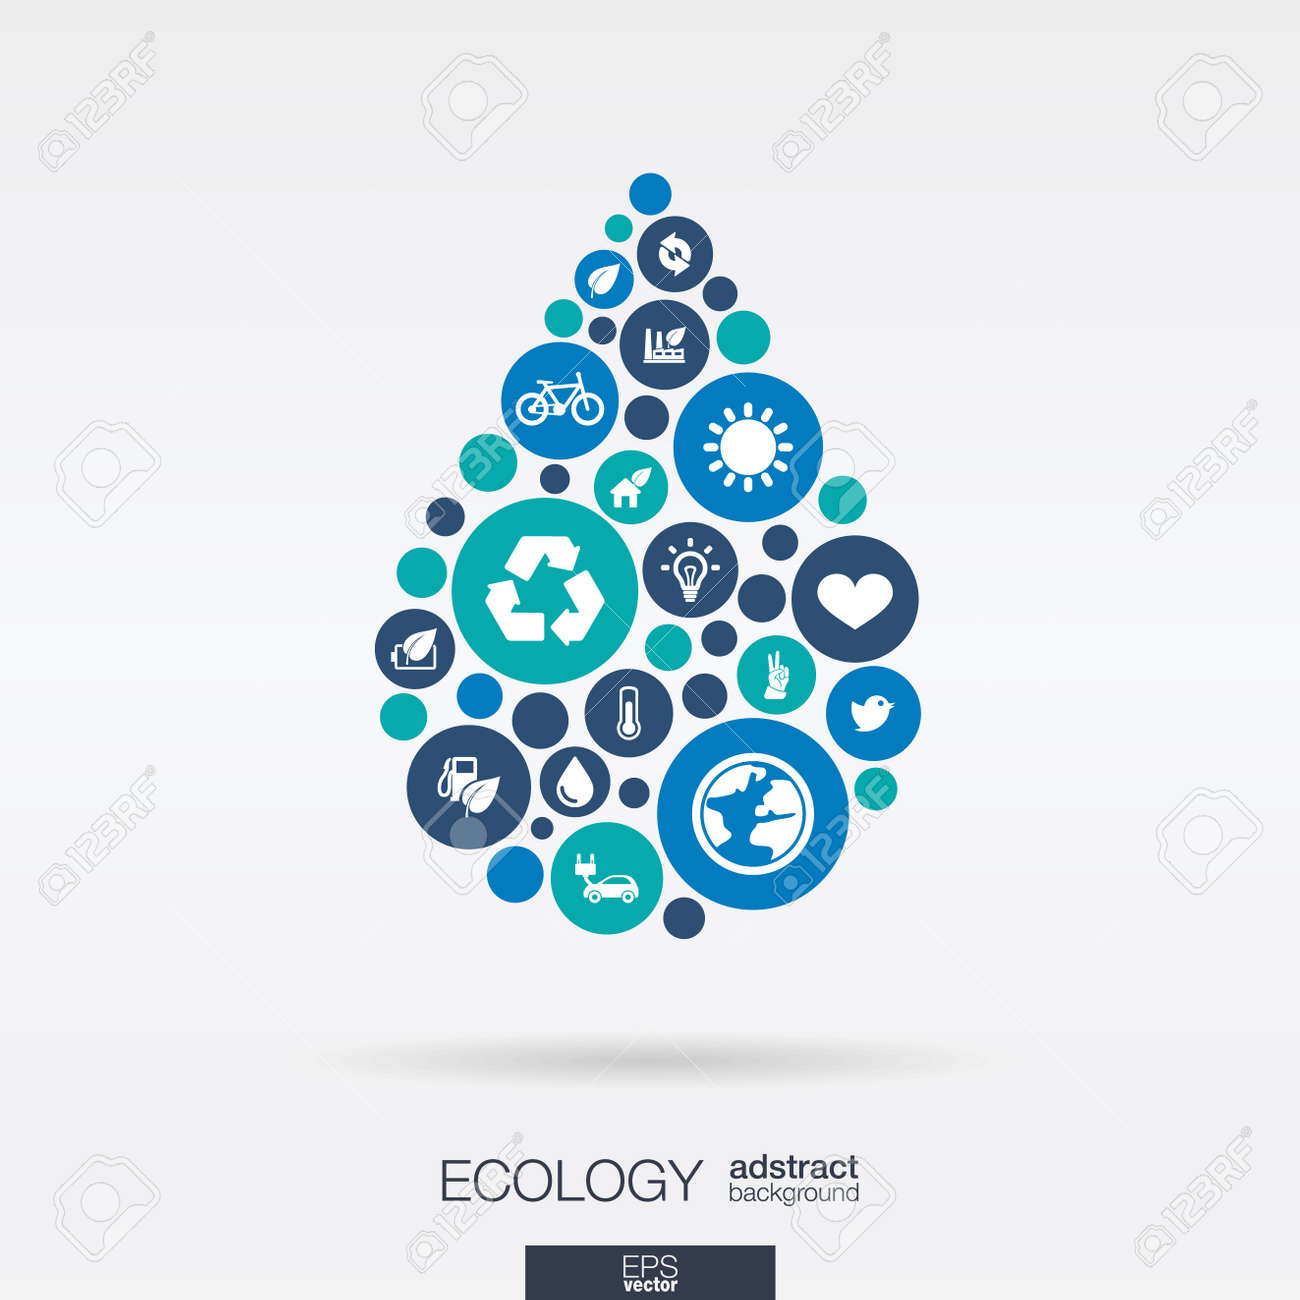 Color circles, flat icons in a water drop shape: ecology, earth, nature, eco, environmental protection concepts - 43347926